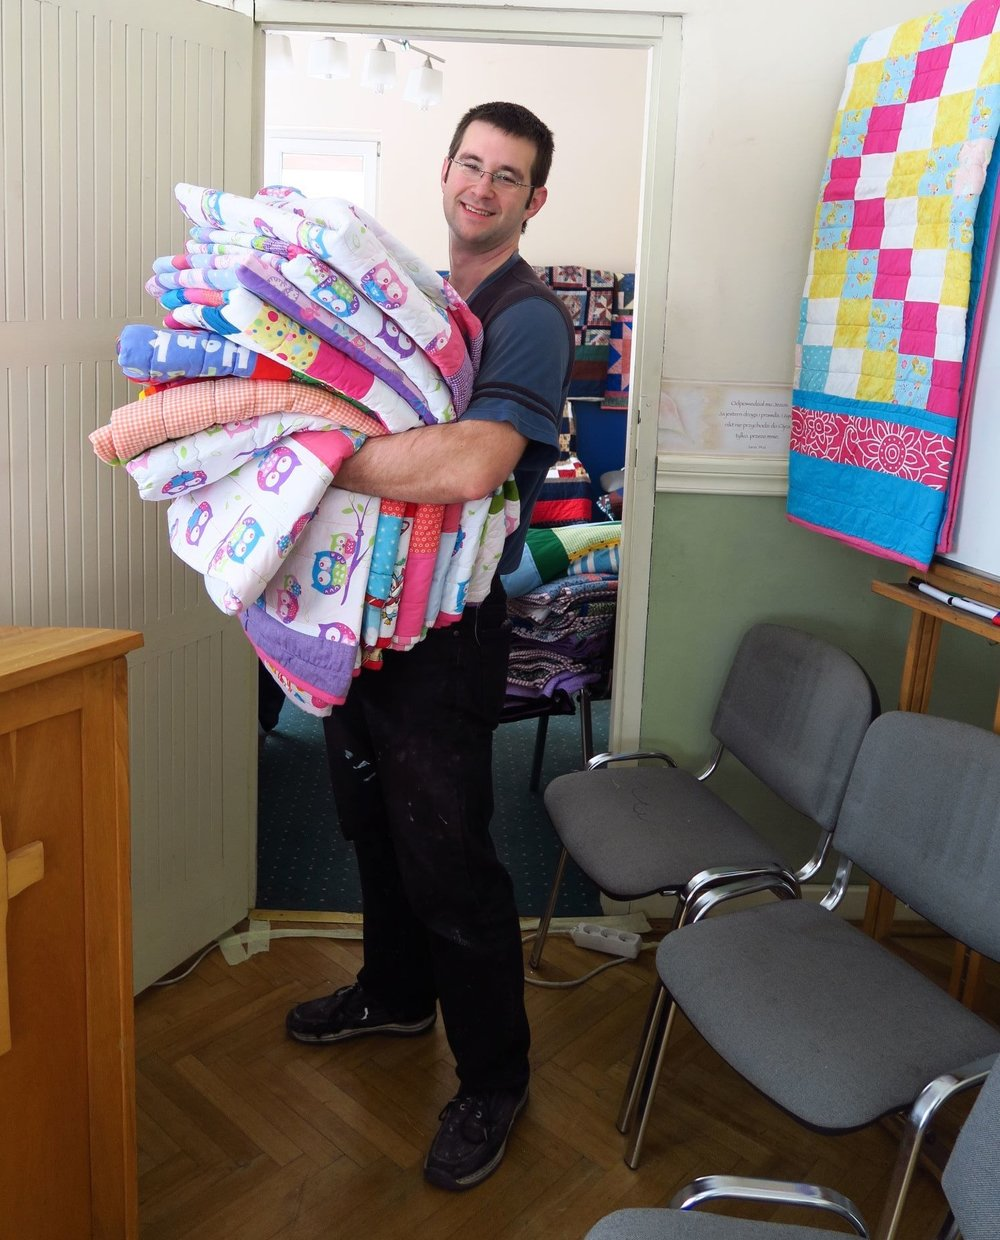 Tim carrying a load of quilts.